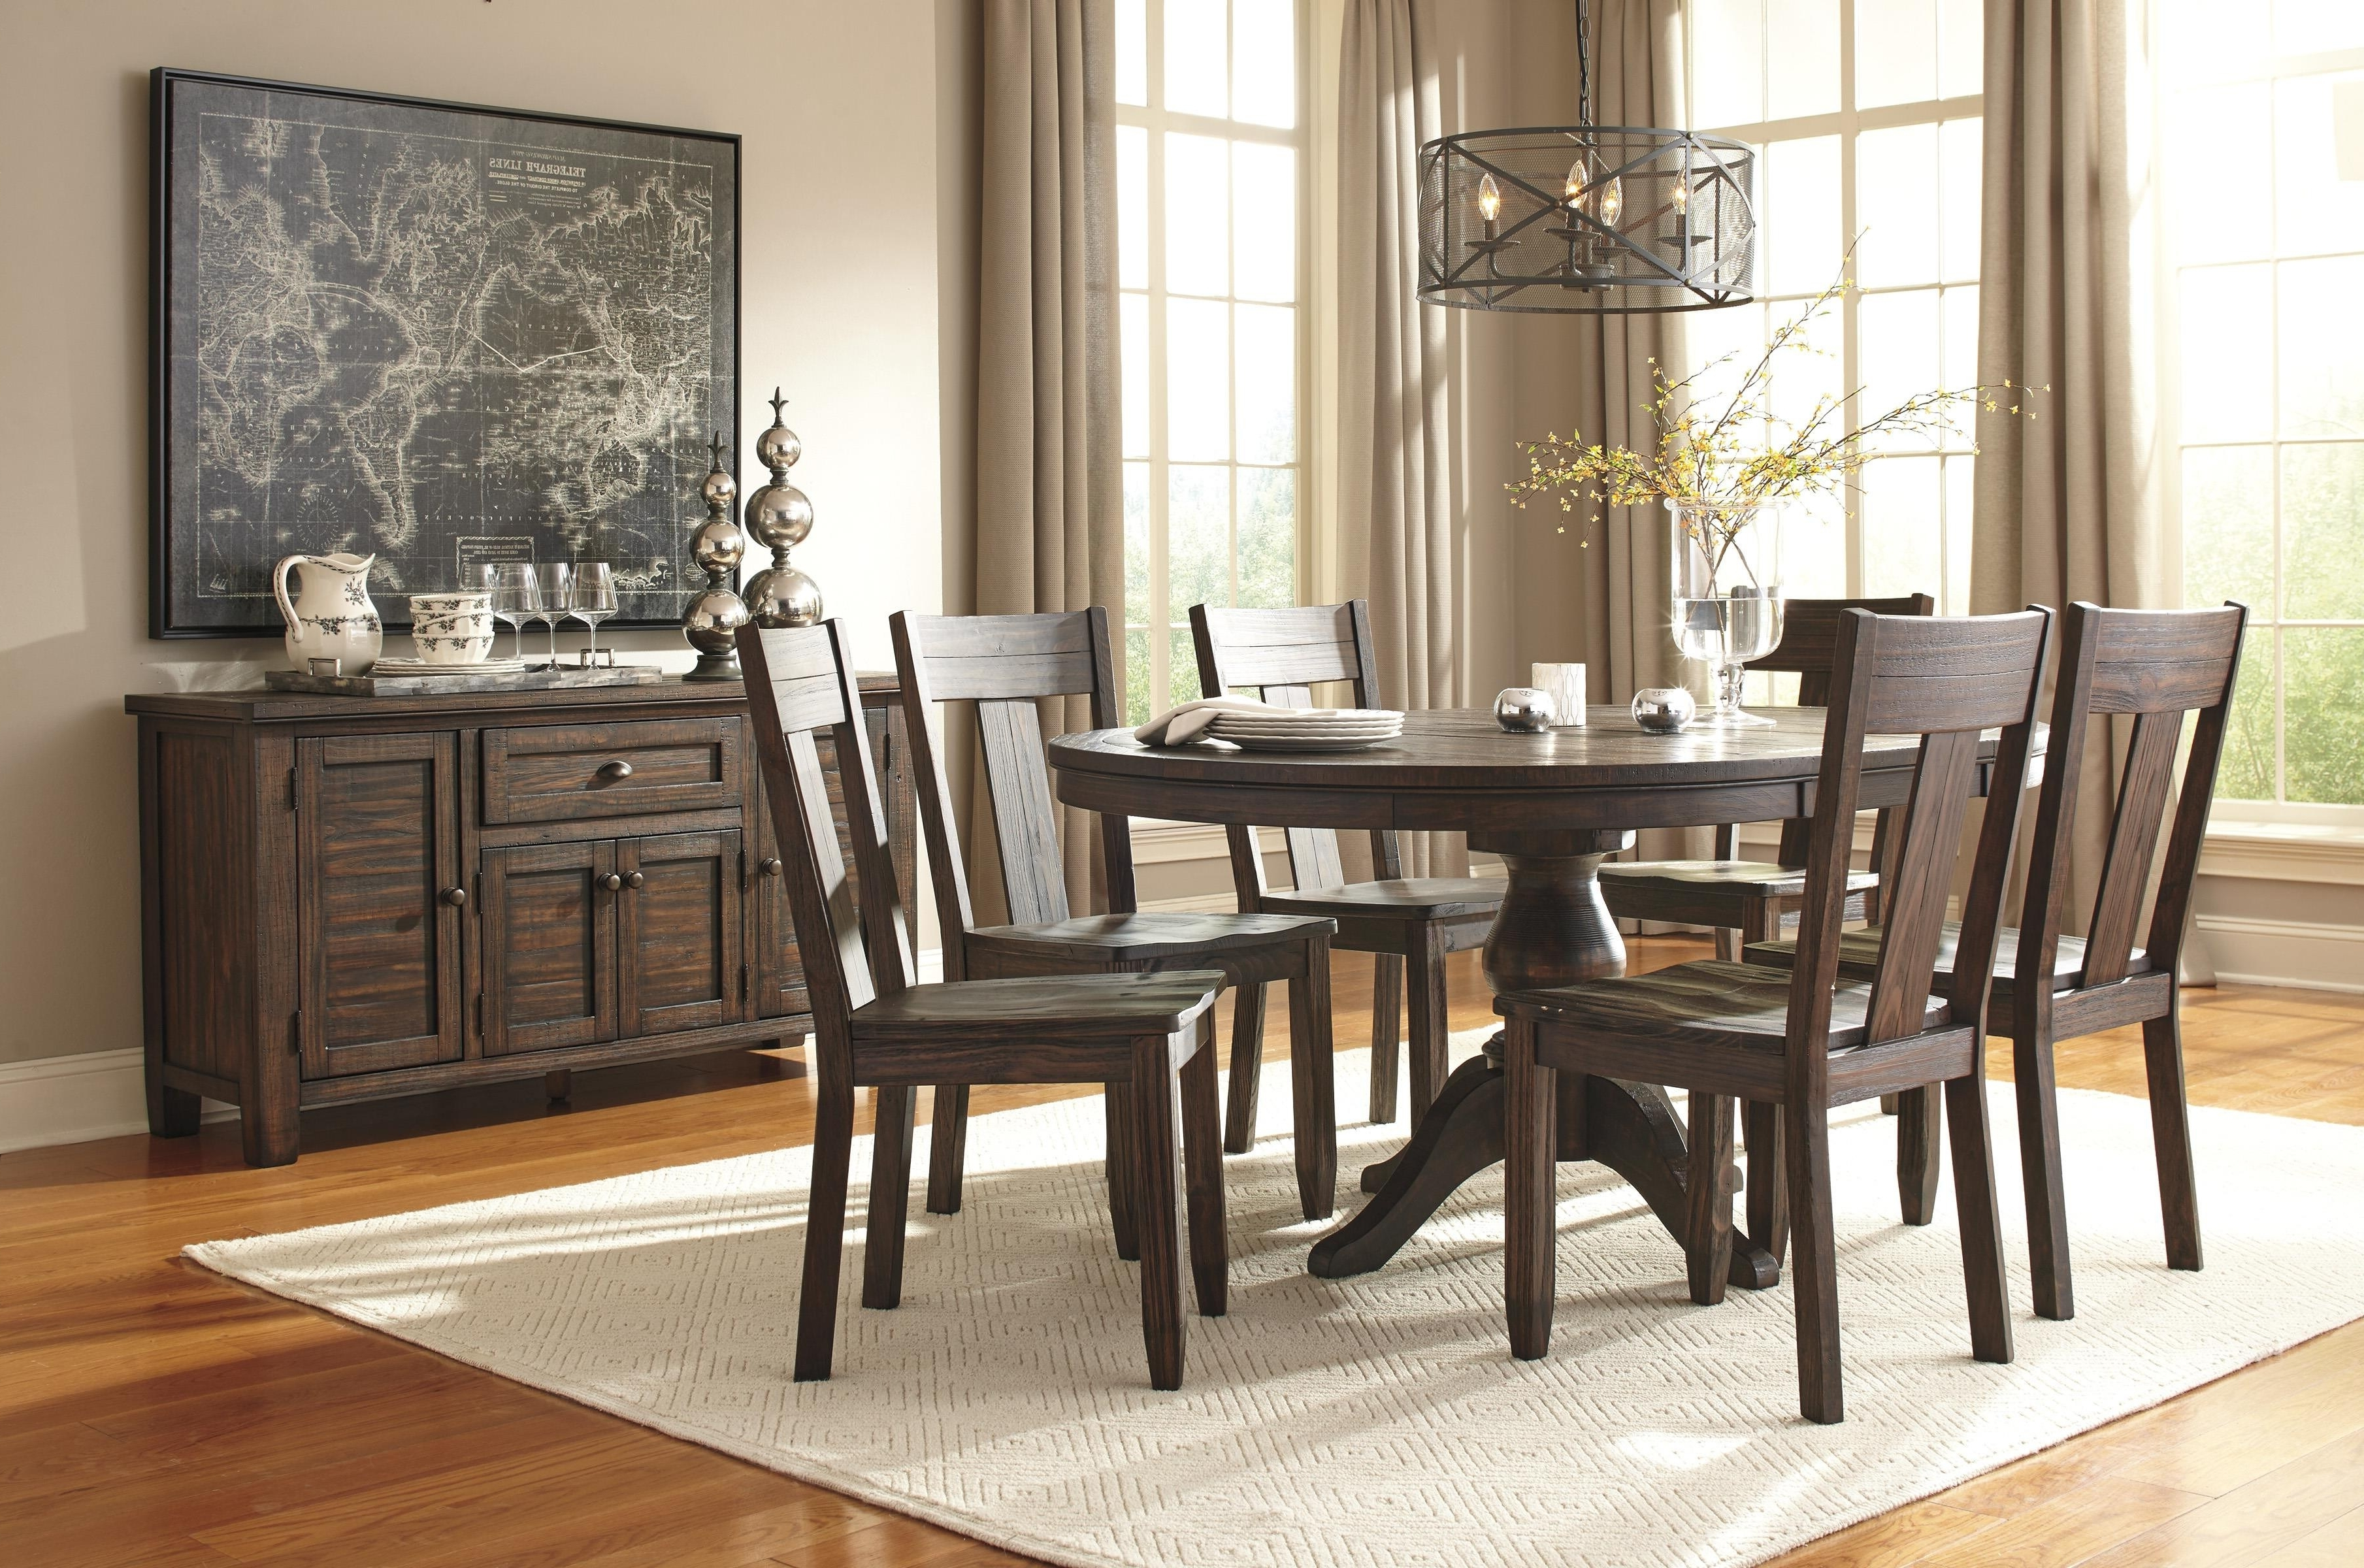 Tempting Table Piece Set Partridge Living Spaces Decor Table Piece Pertaining To Well Known Combs Extension Dining Tables (View 11 of 25)